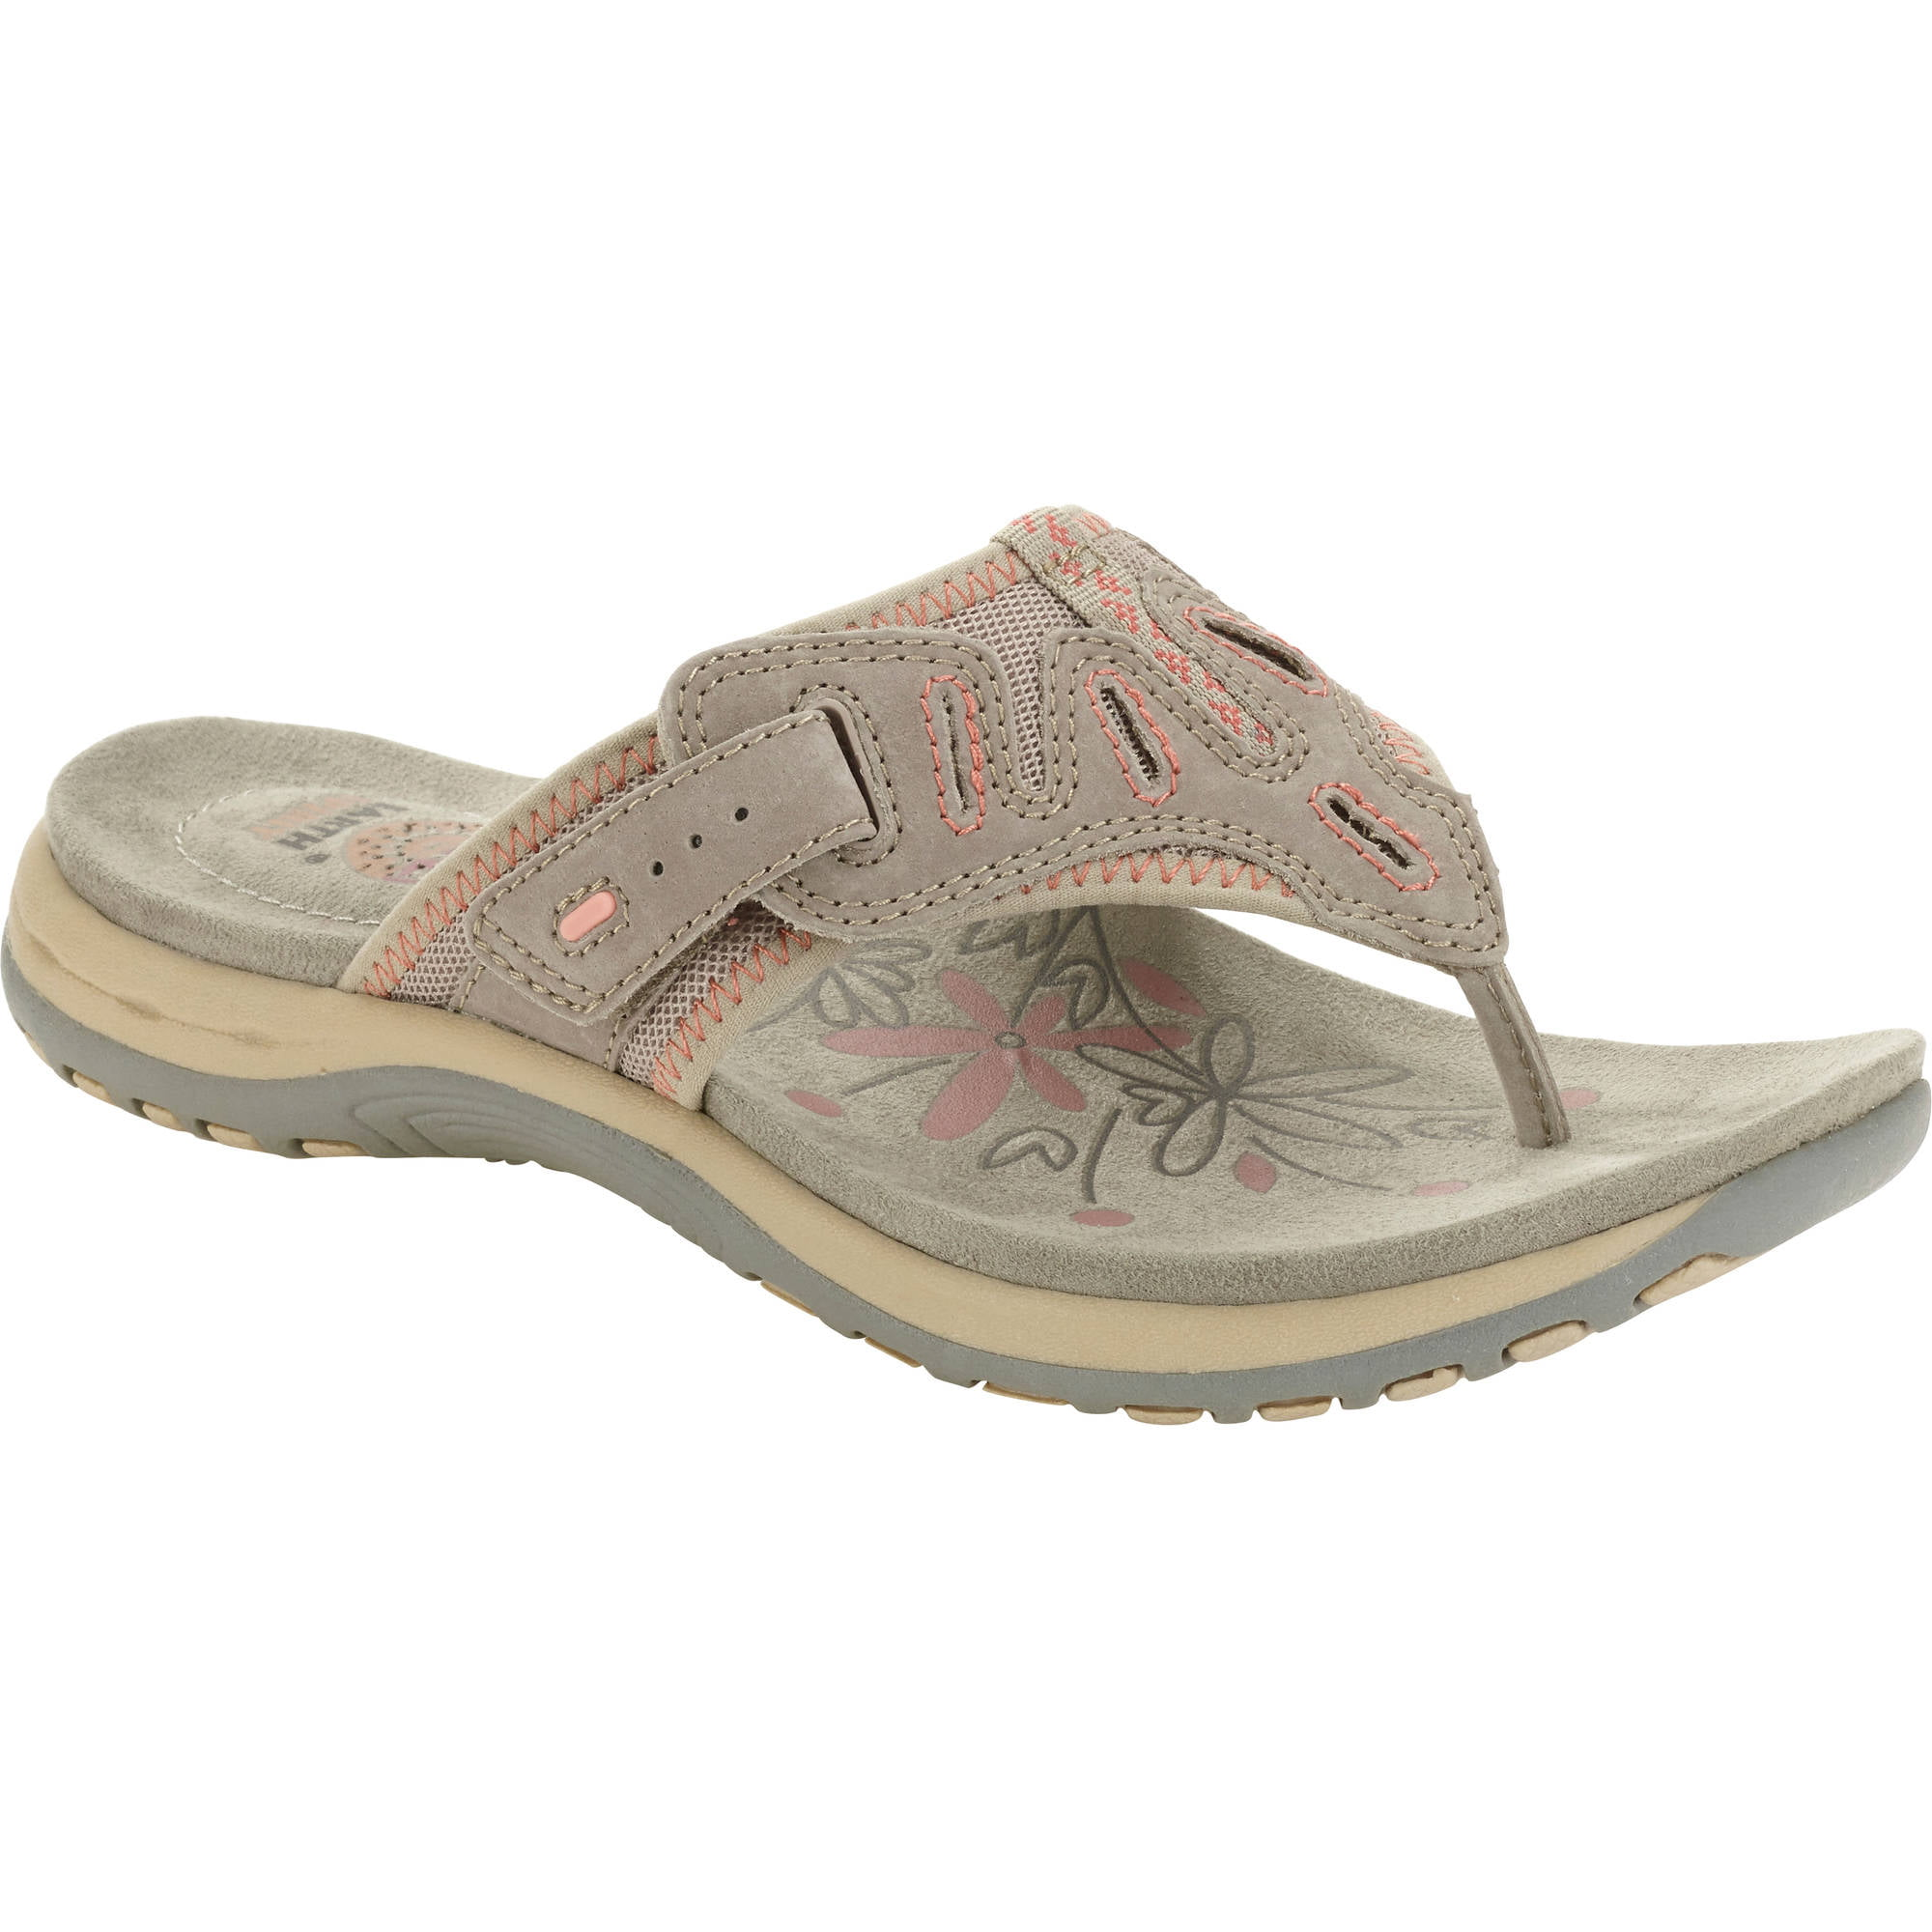 Womens sandals size 5.5